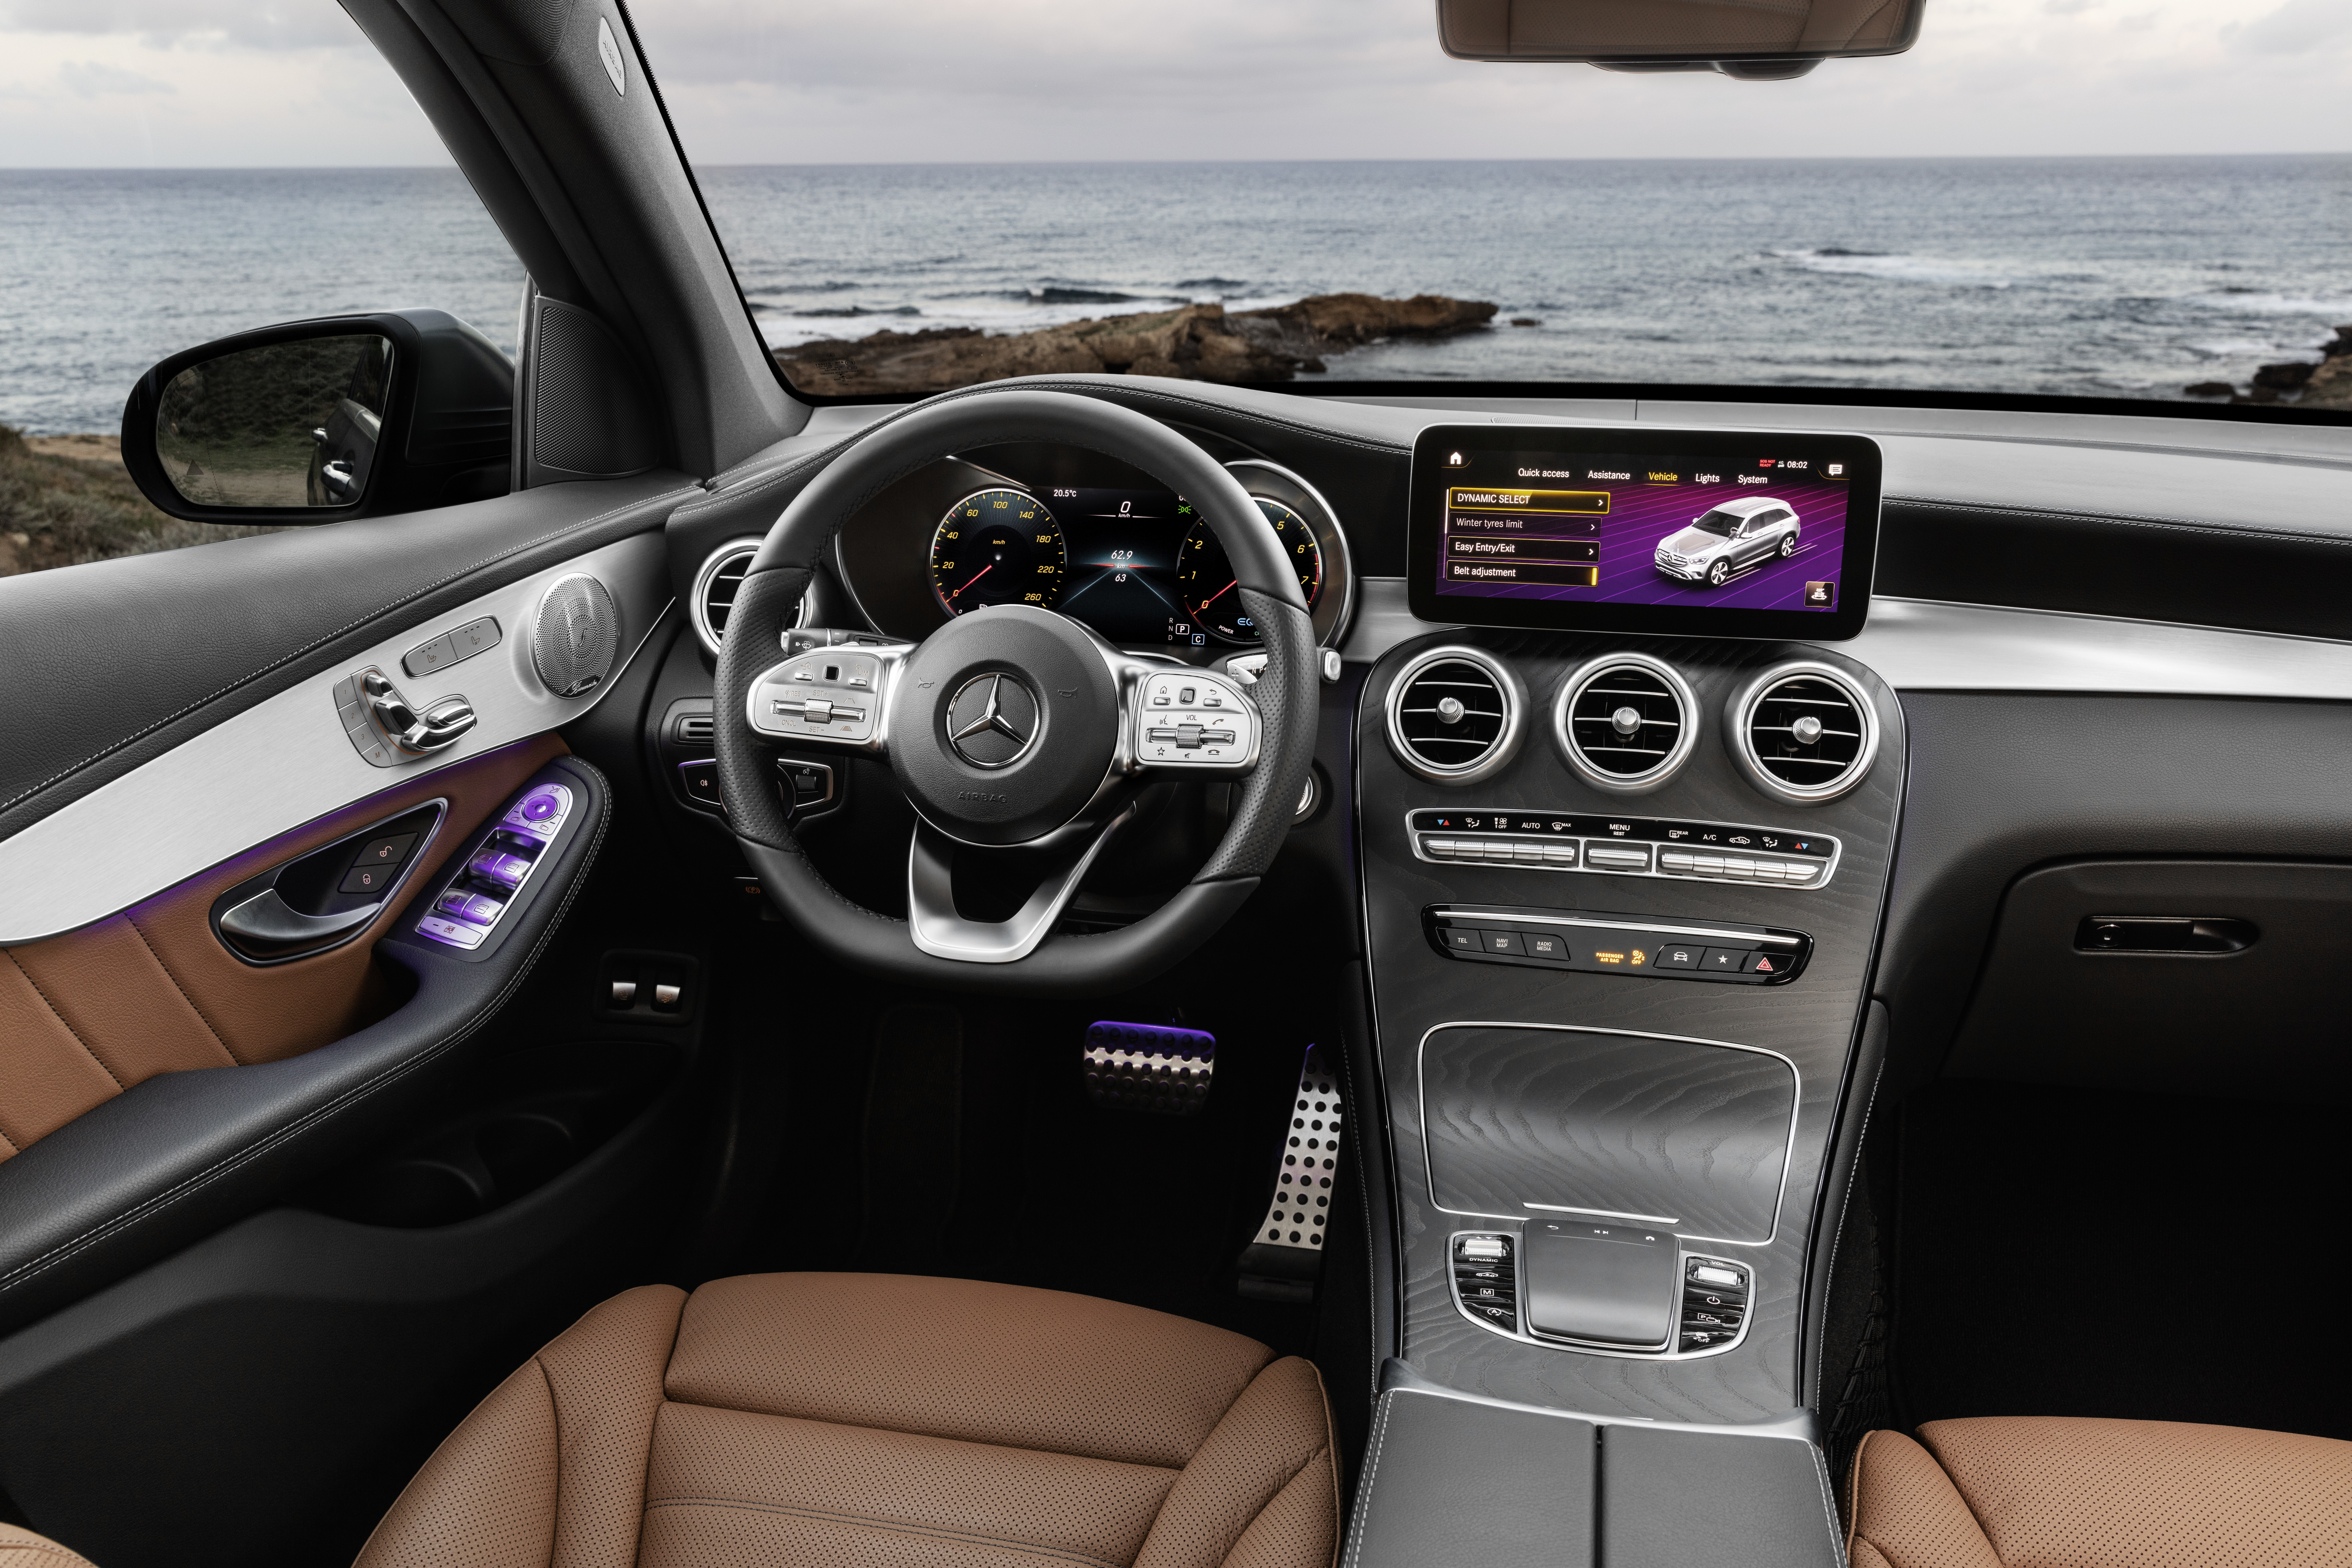 2020 Mercedes Benz GLC Interior